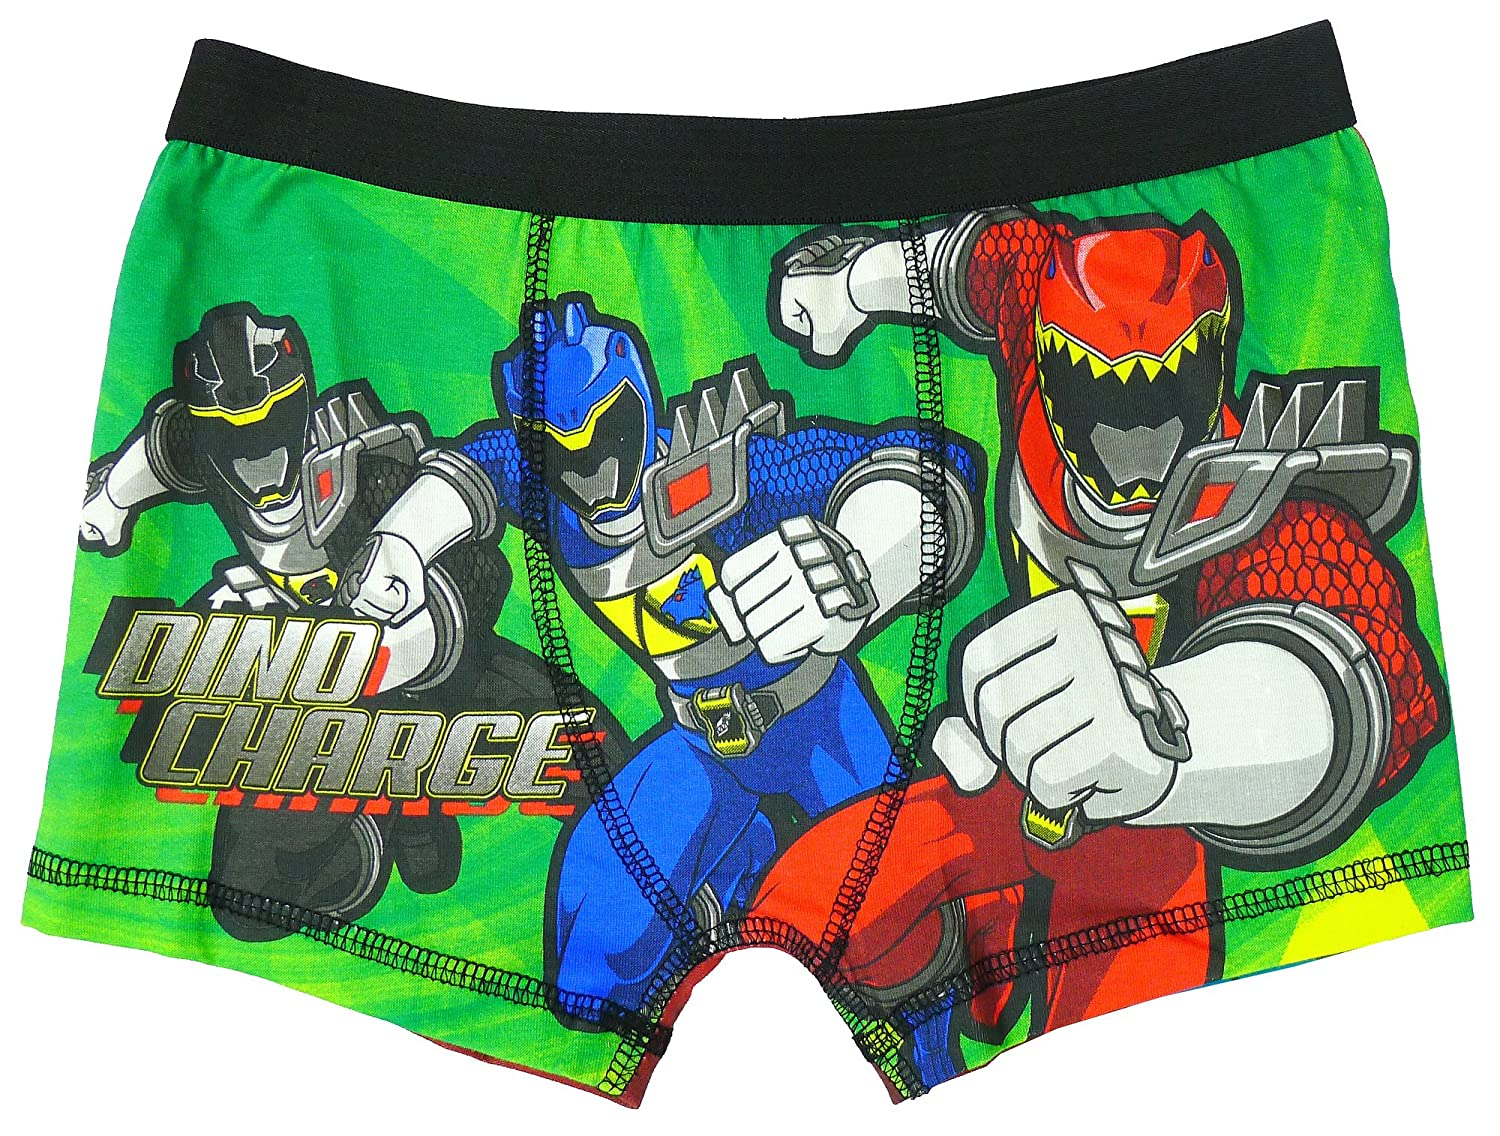 Power Rangers Boys Dino Charge Underpants Trunk Fit Briefs Boxer Shorts Sizes from 4 to 8 Years